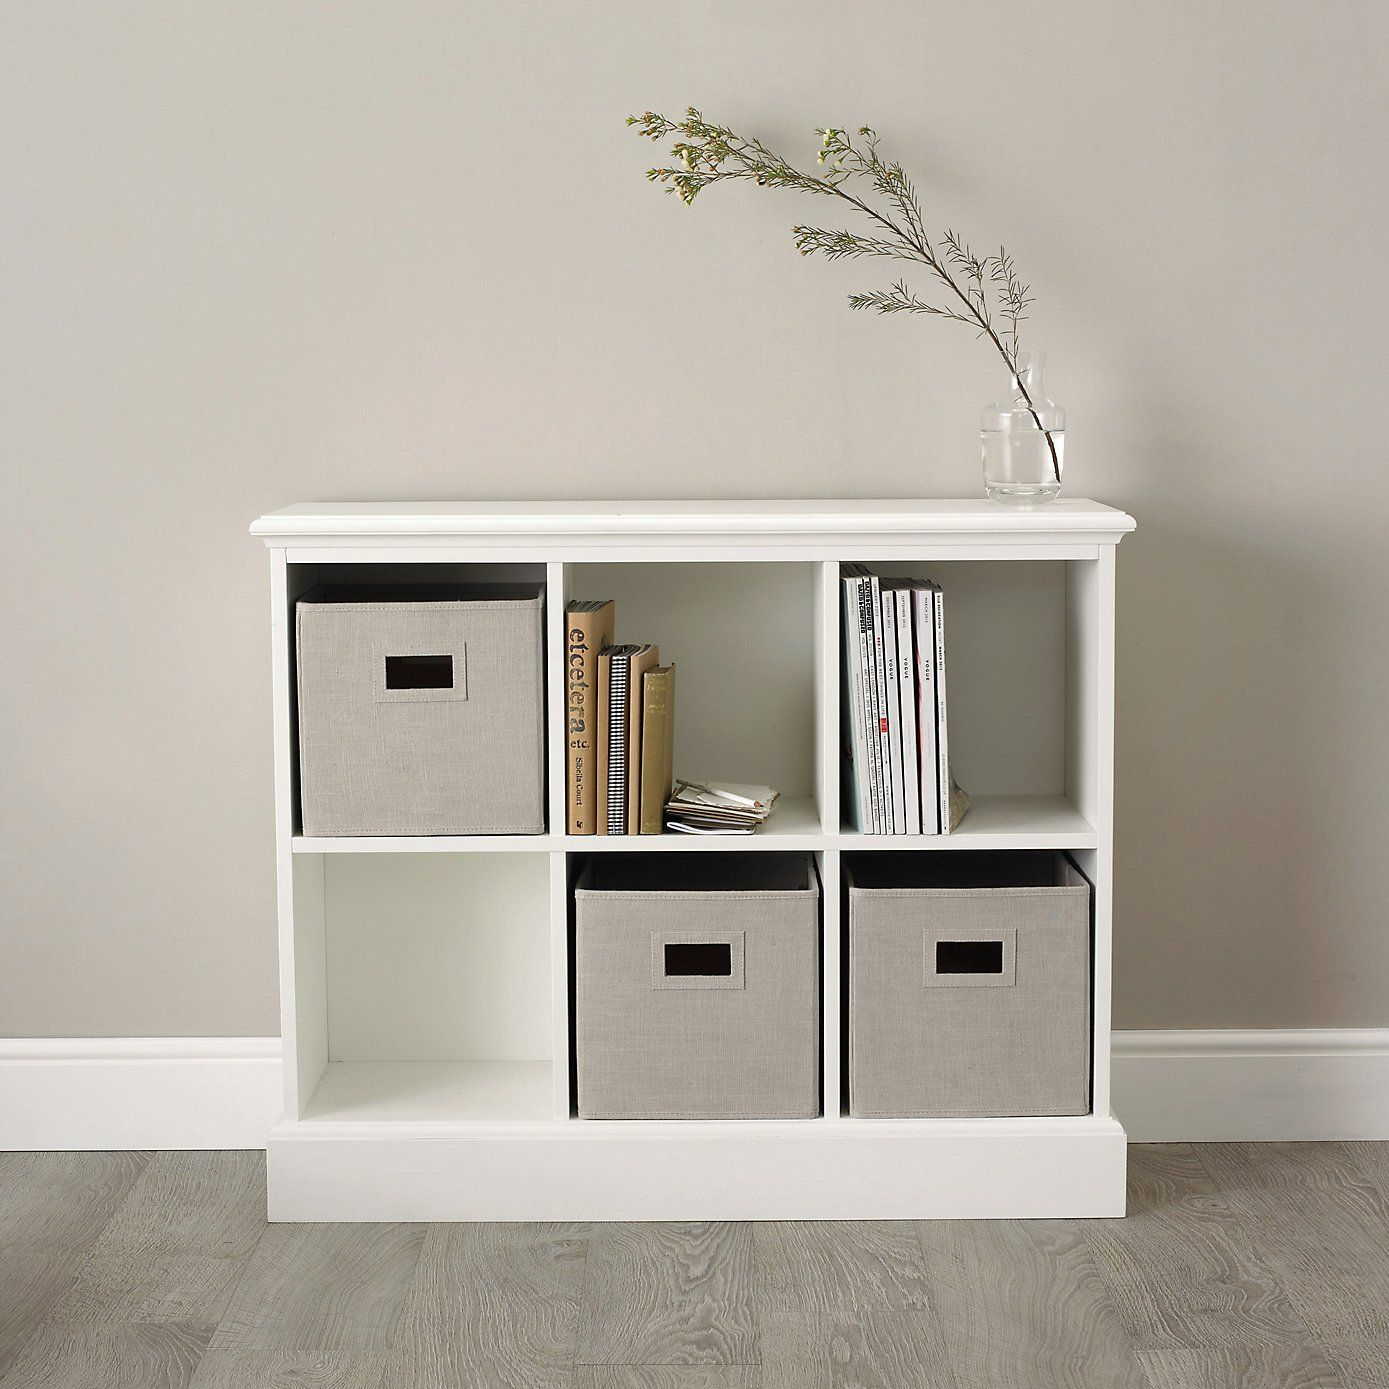 Classic 6 Cube Storage Unit From The White Company Cube Storage Unit Cube Storage Shelving Unit Bedroom